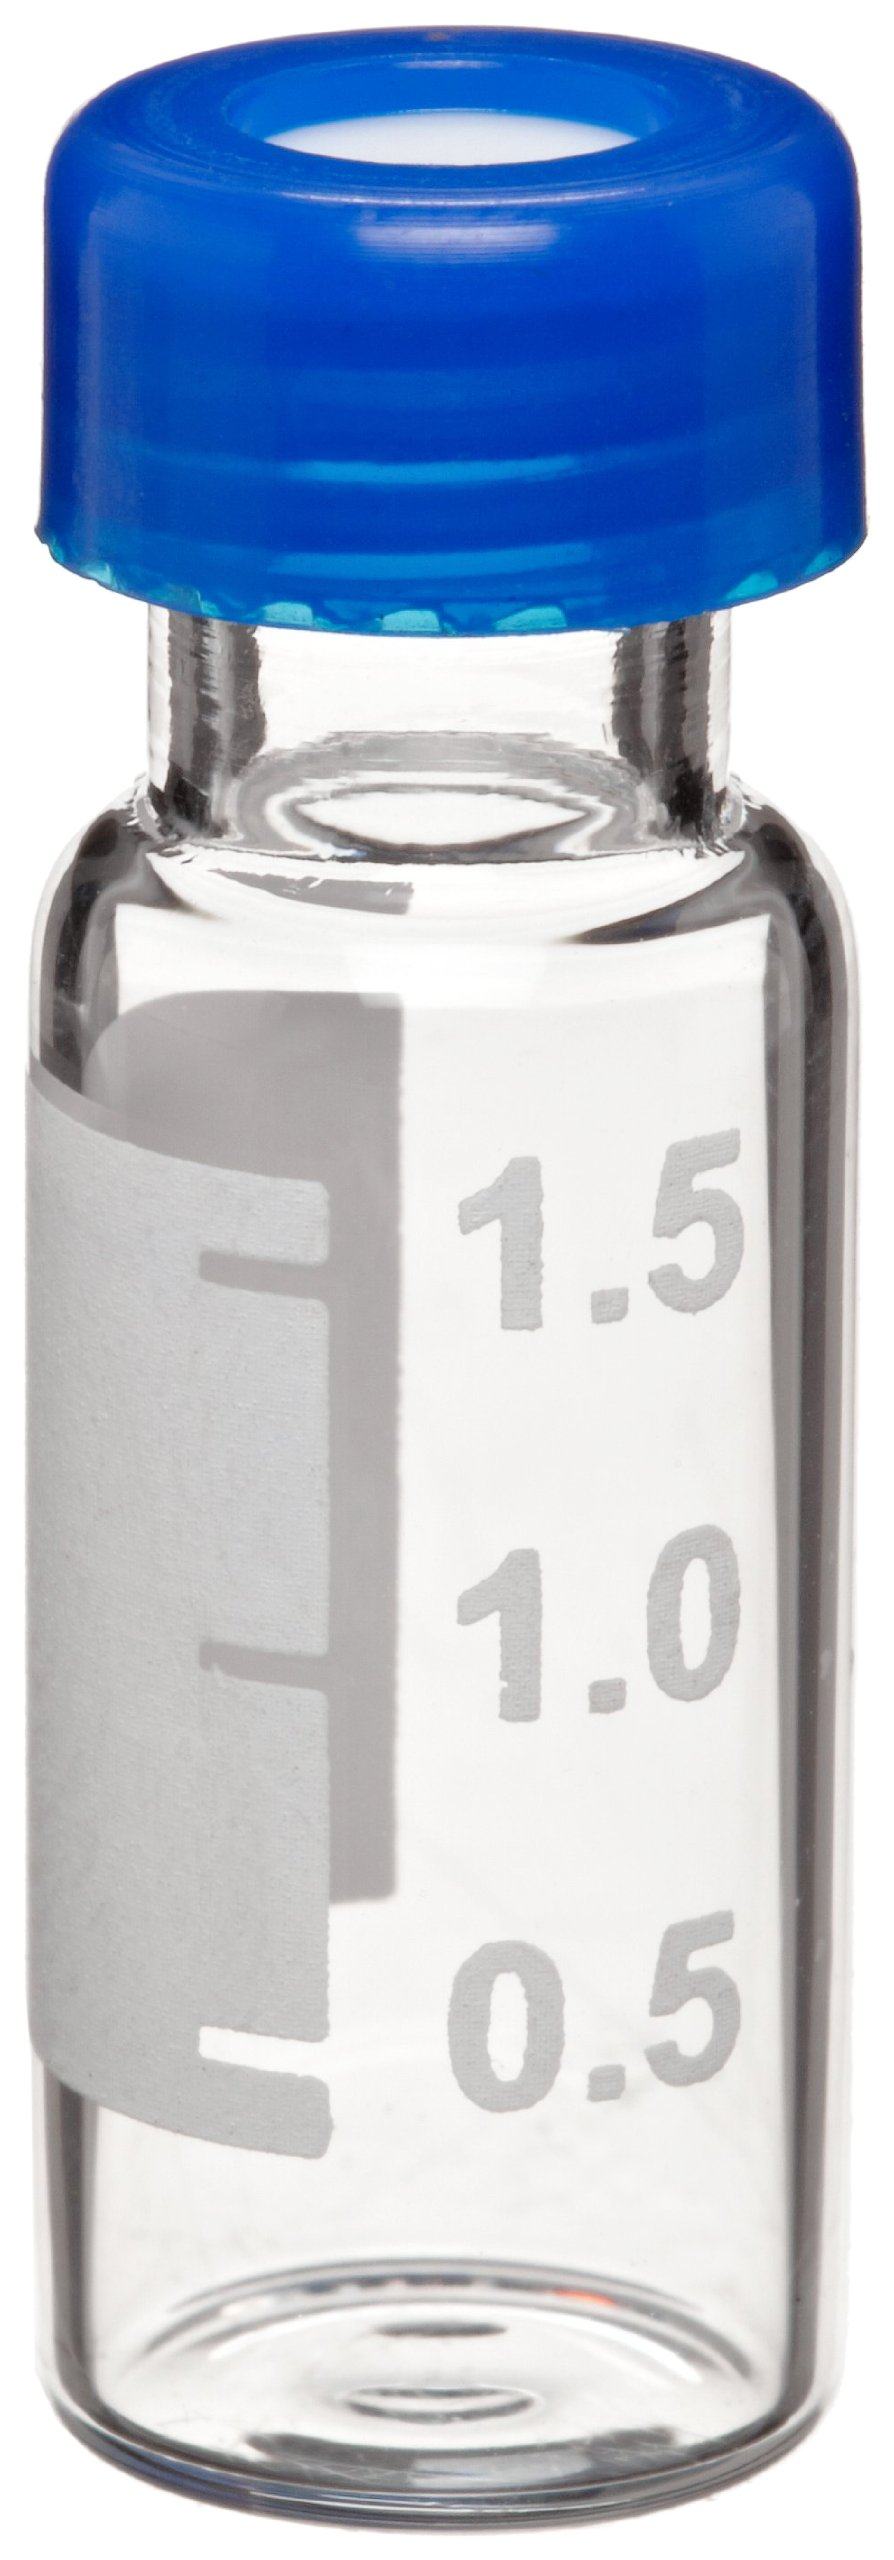 Wheaton W225161 Borosilicate Glass 1.8mL Vial with Writing Patch and 9mm Blue ABC Screw Cap, Clear (Case of 1000)